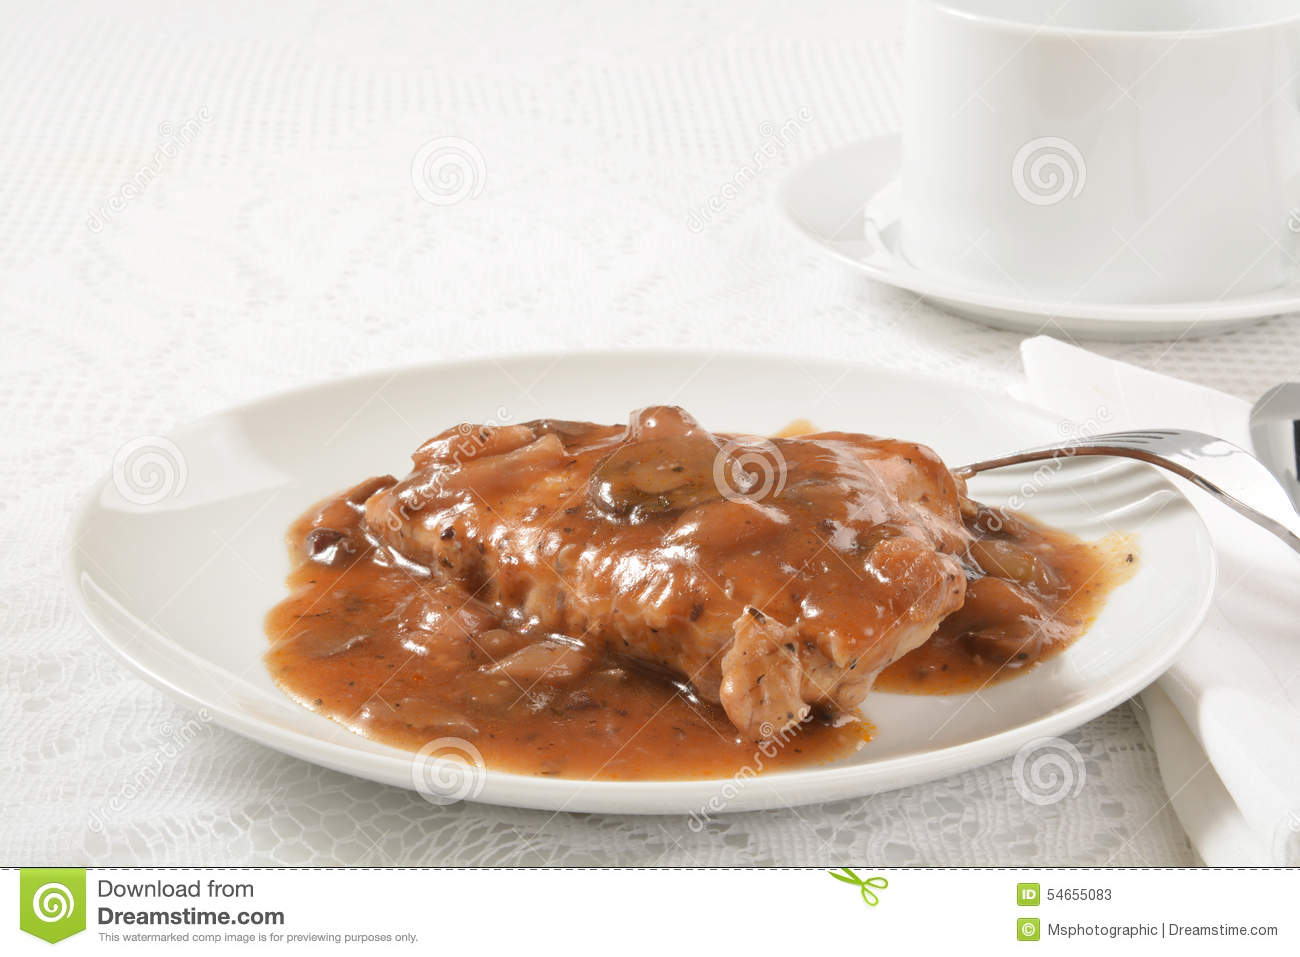 Grilled chicken breast smothered in a mushroom, wine gravy sauce.